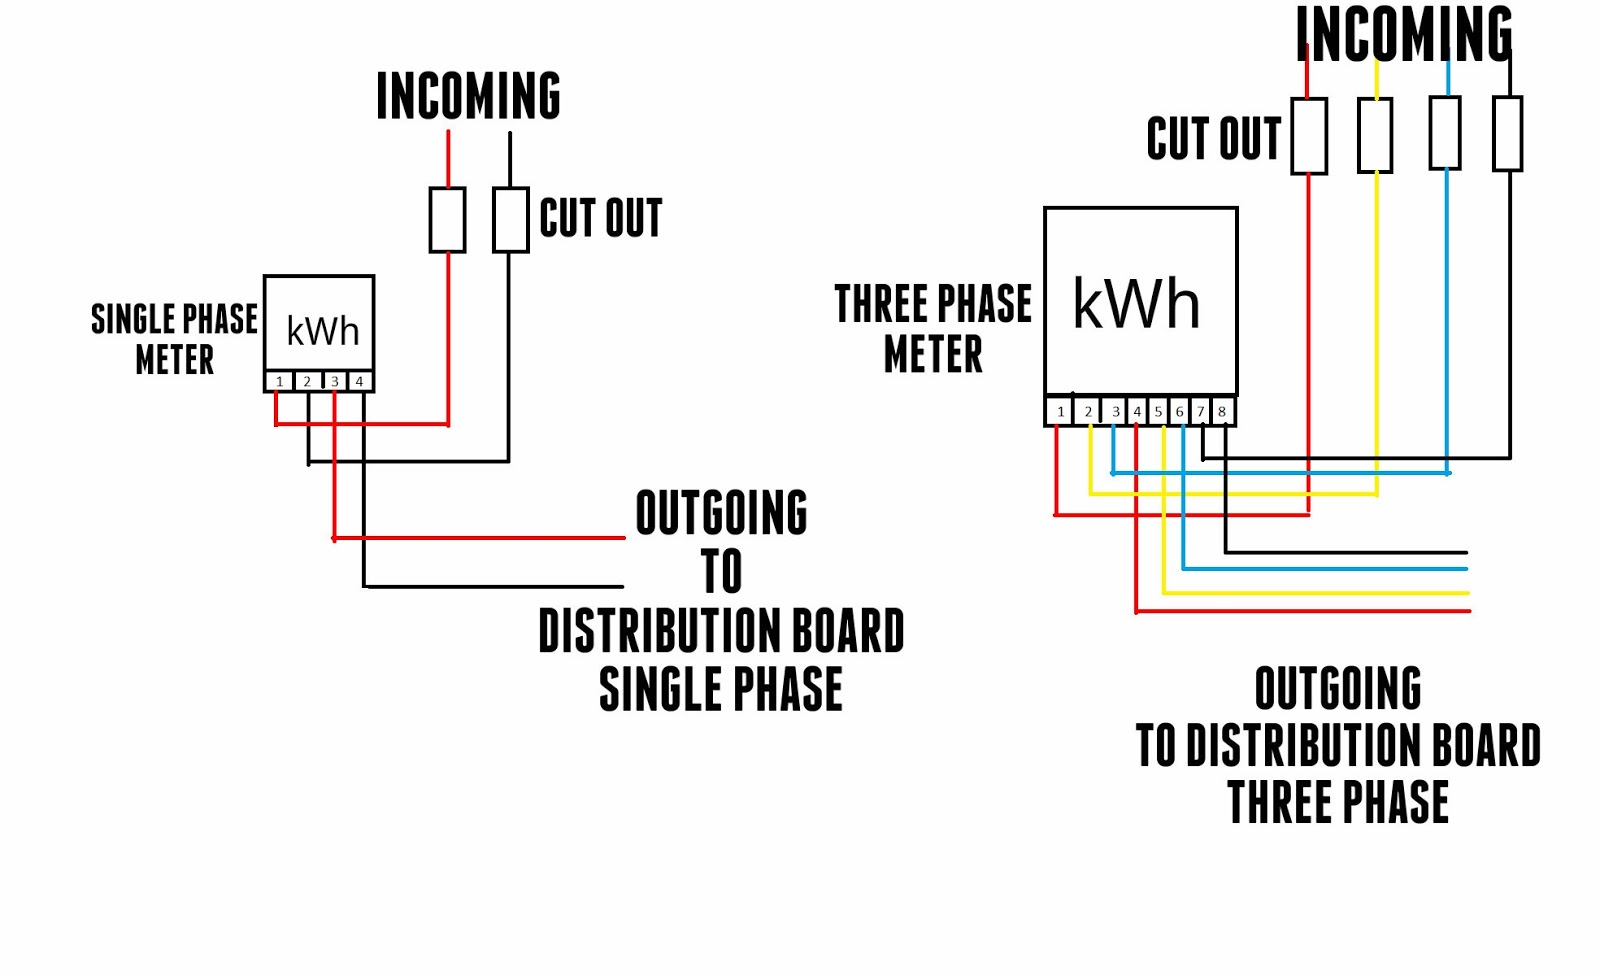 3 Phase Wiring For Dummies 480 Volt To 240 Single Diagram The World Through Electricity: Kilo Watt Hour Meter (kwh) And Main Service Connection